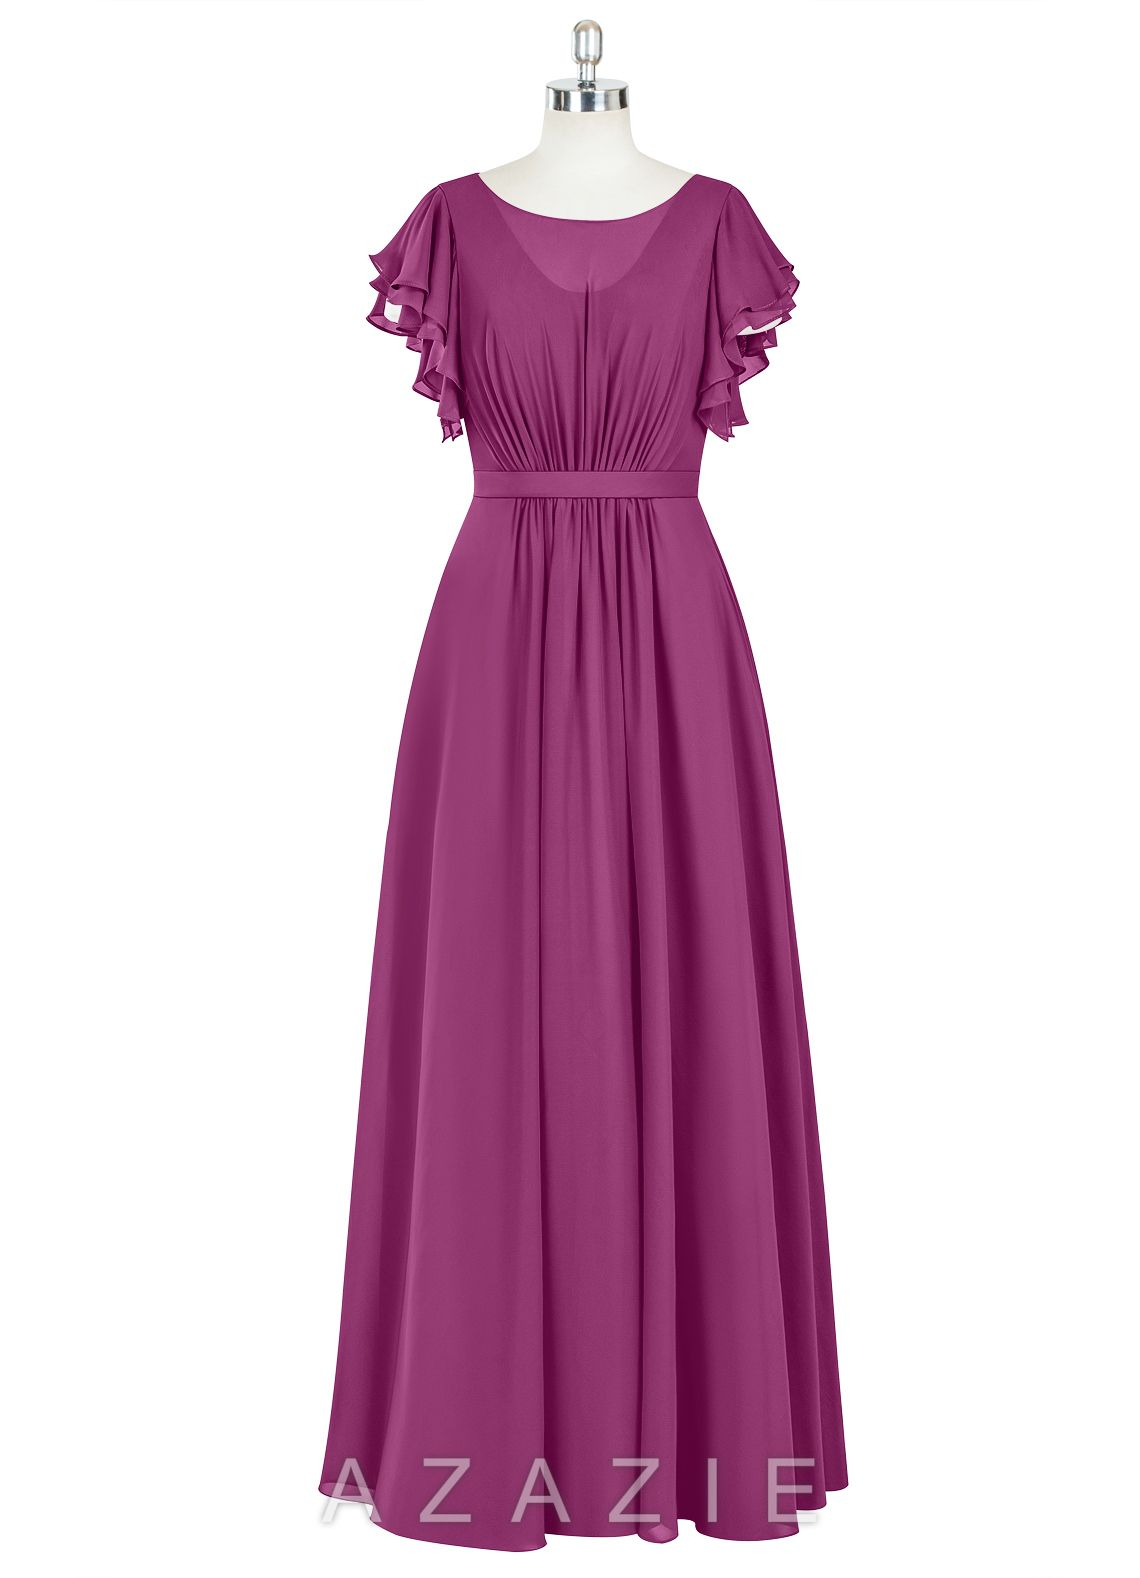 DAPHNE - Modest Bridesmaid Dresses